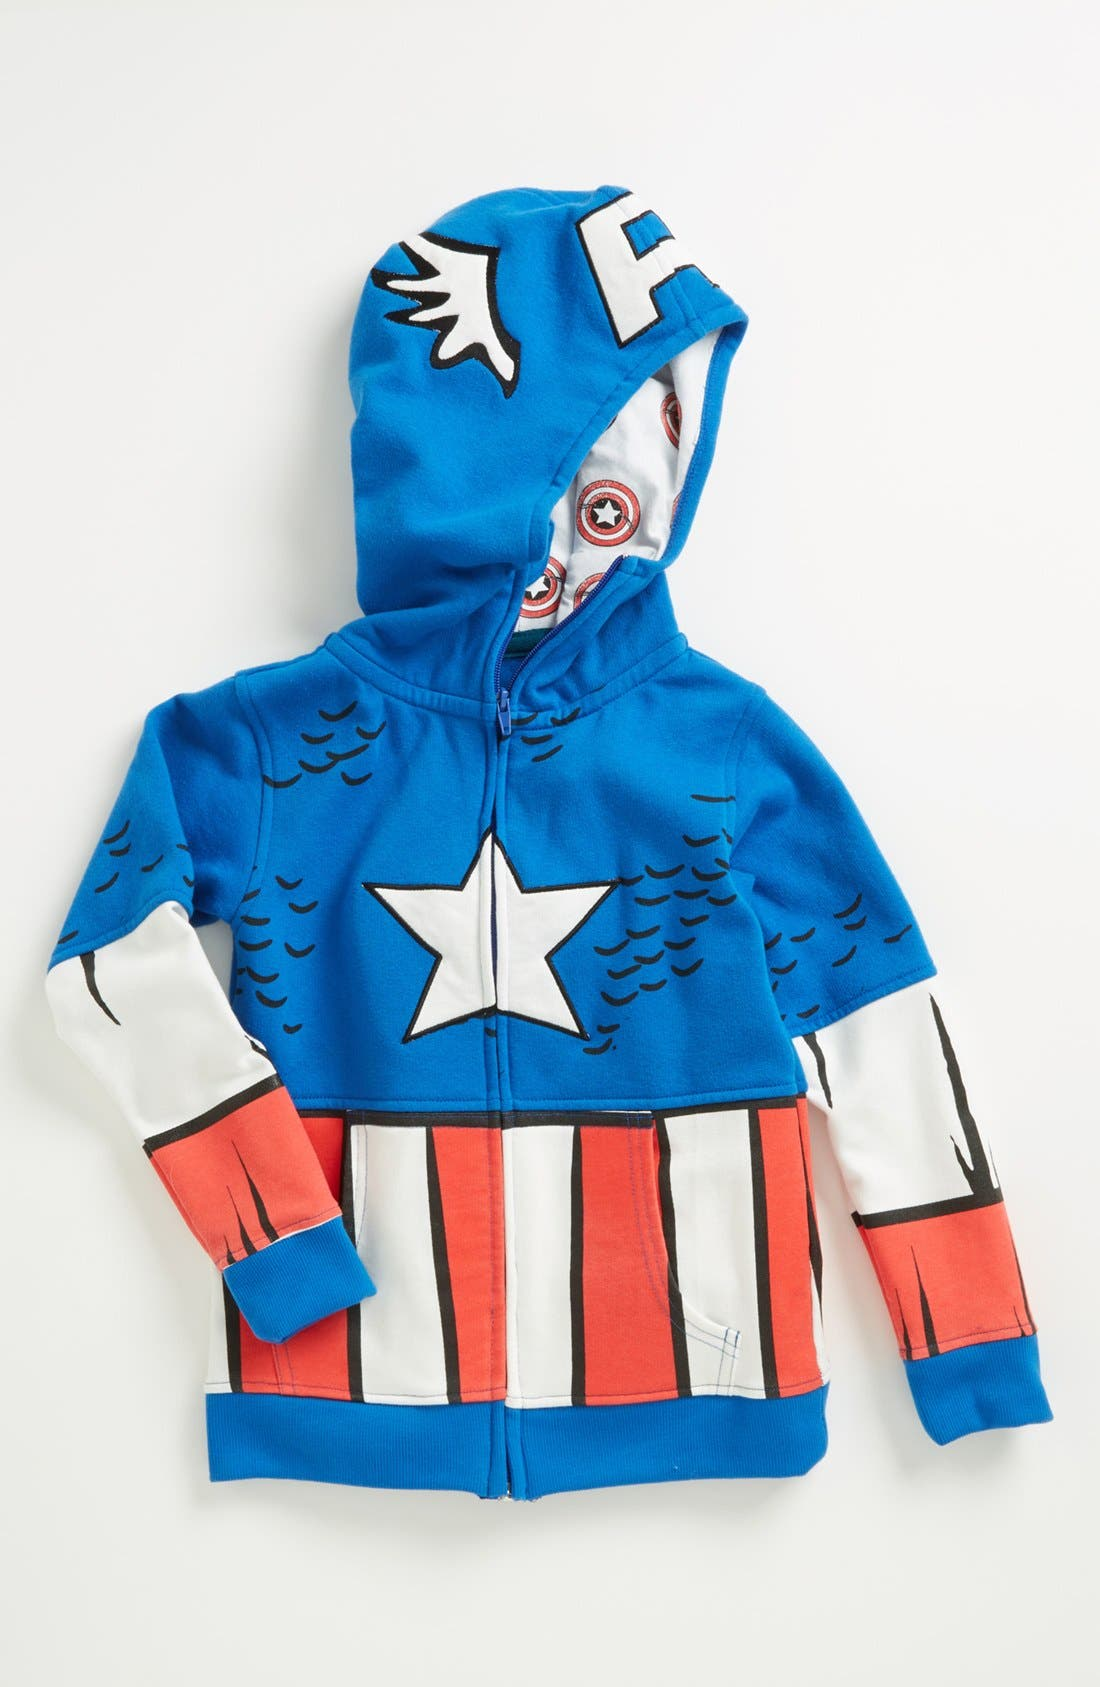 Alternate Image 1 Selected - Jem 'The Captain' Hoodie (Little Boys)